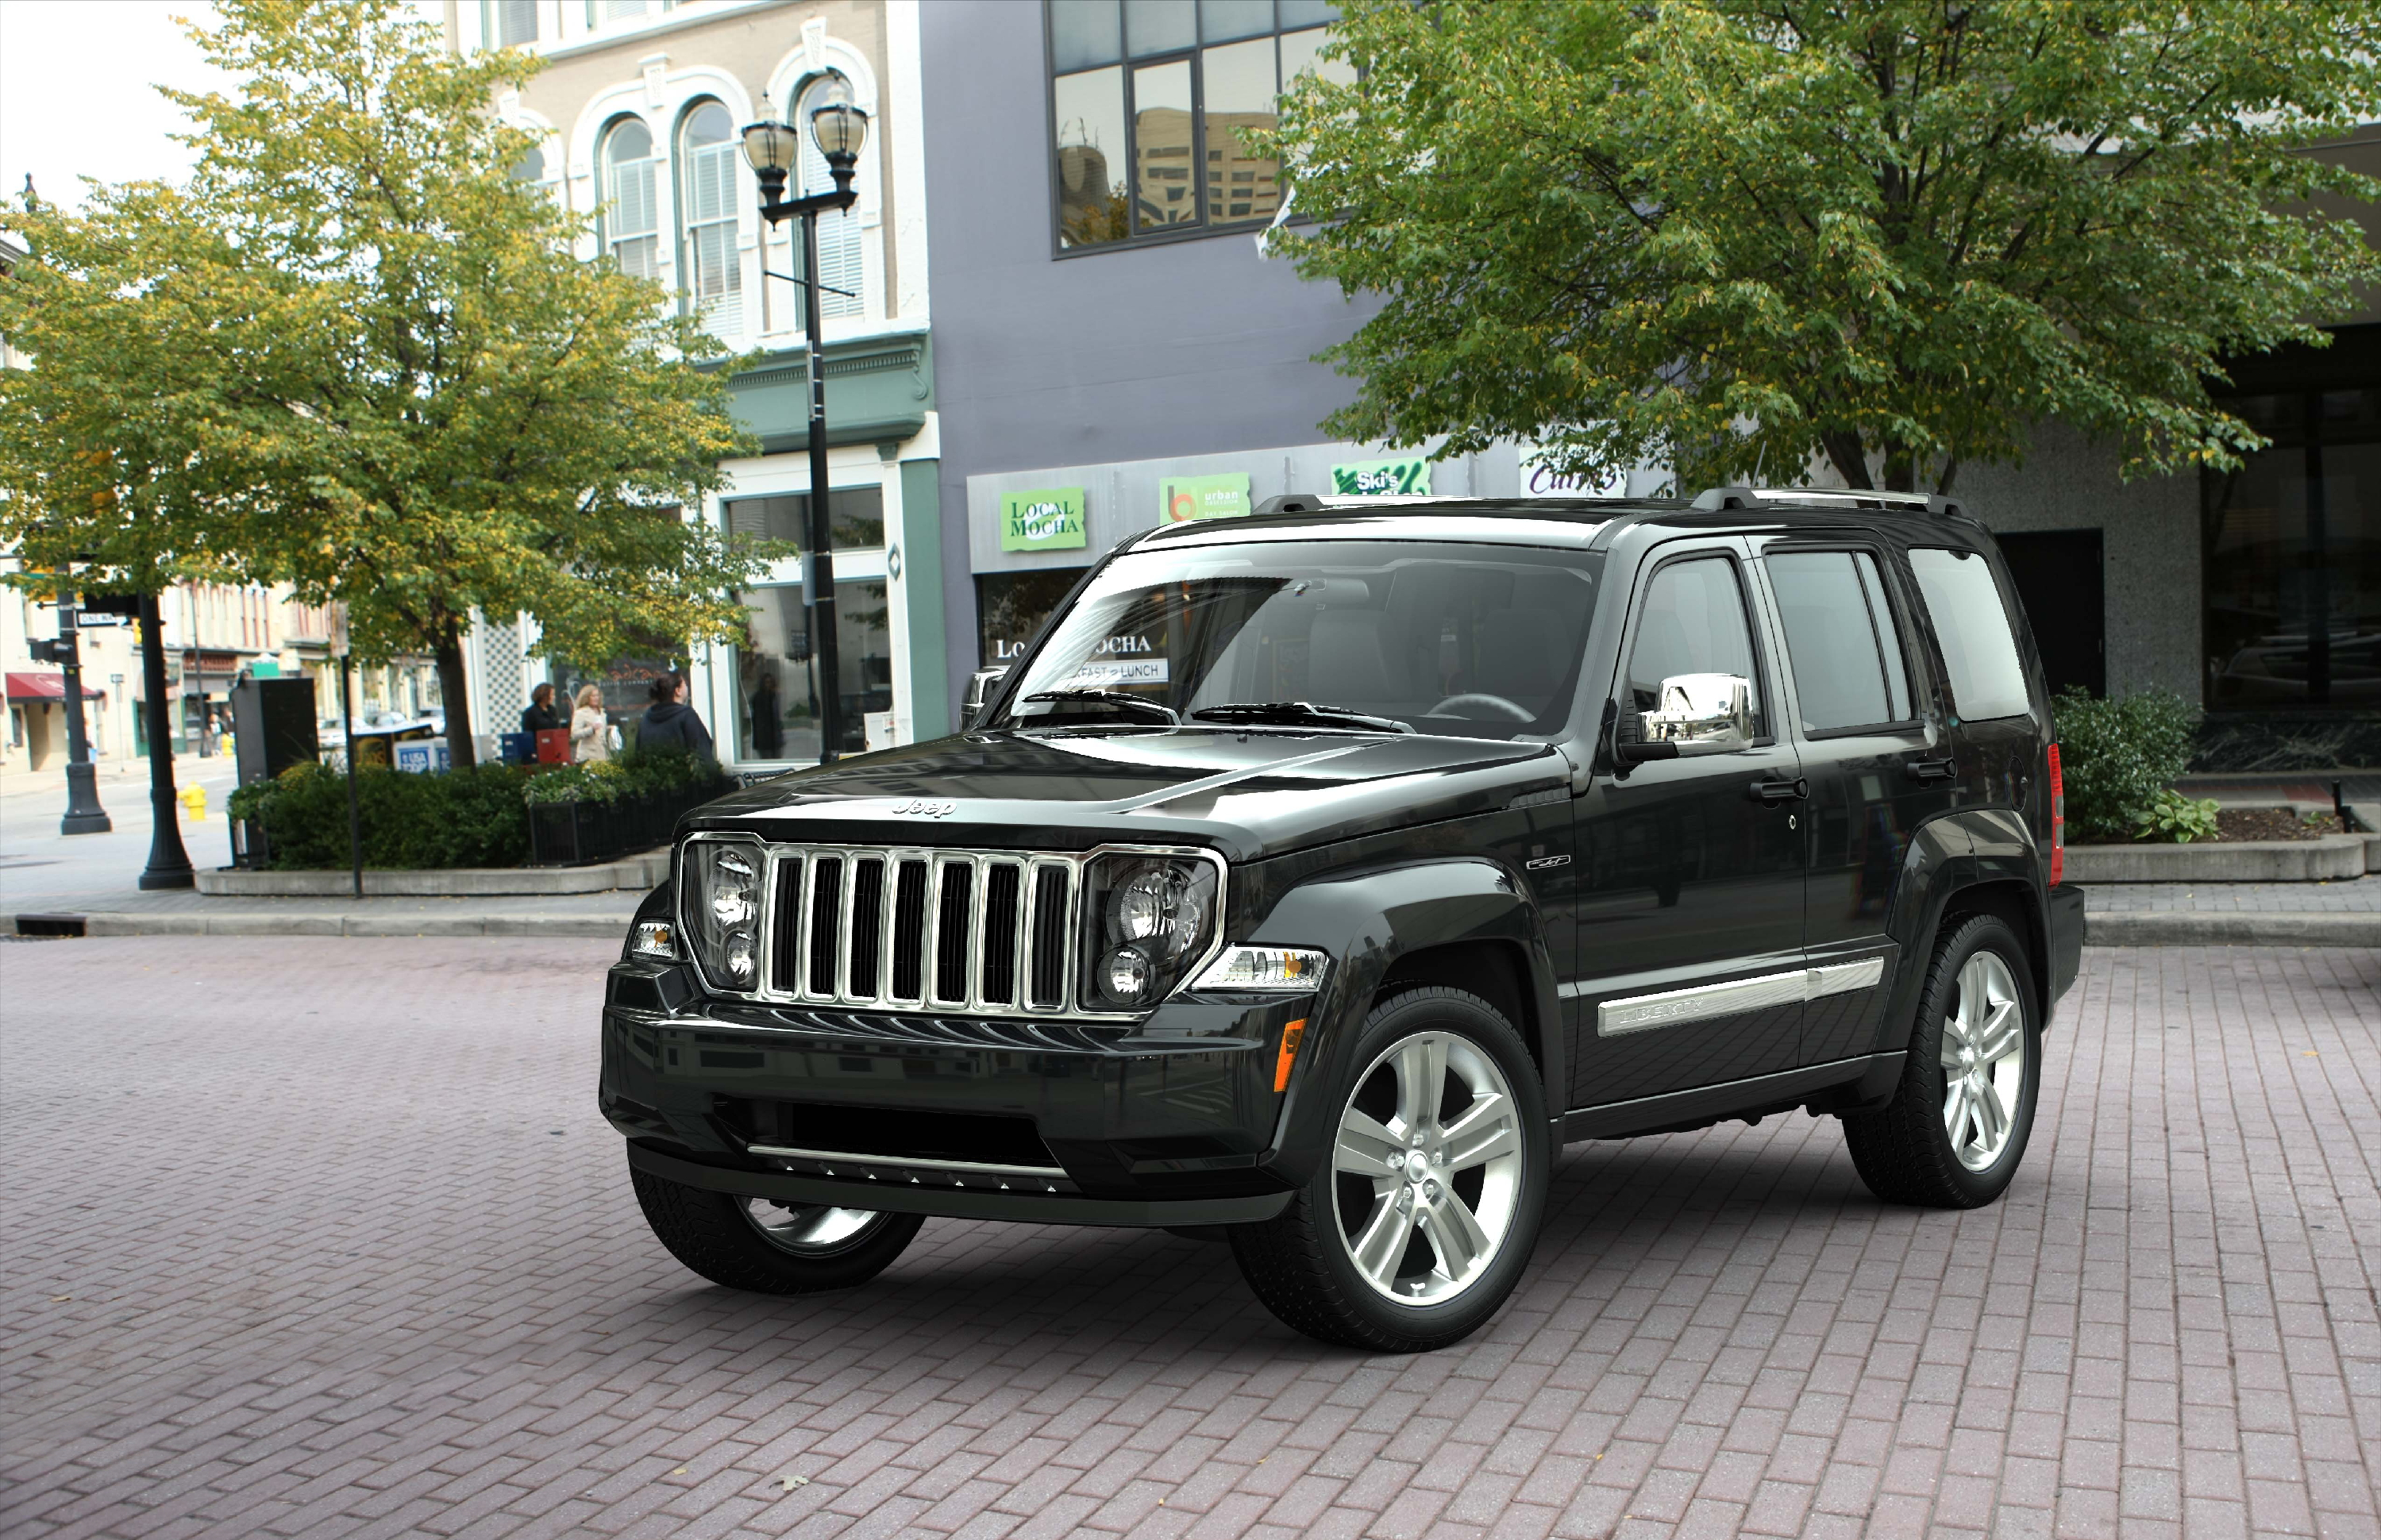 Jeep Grand Cherokee Liberty Get Premium Editions 171 Road